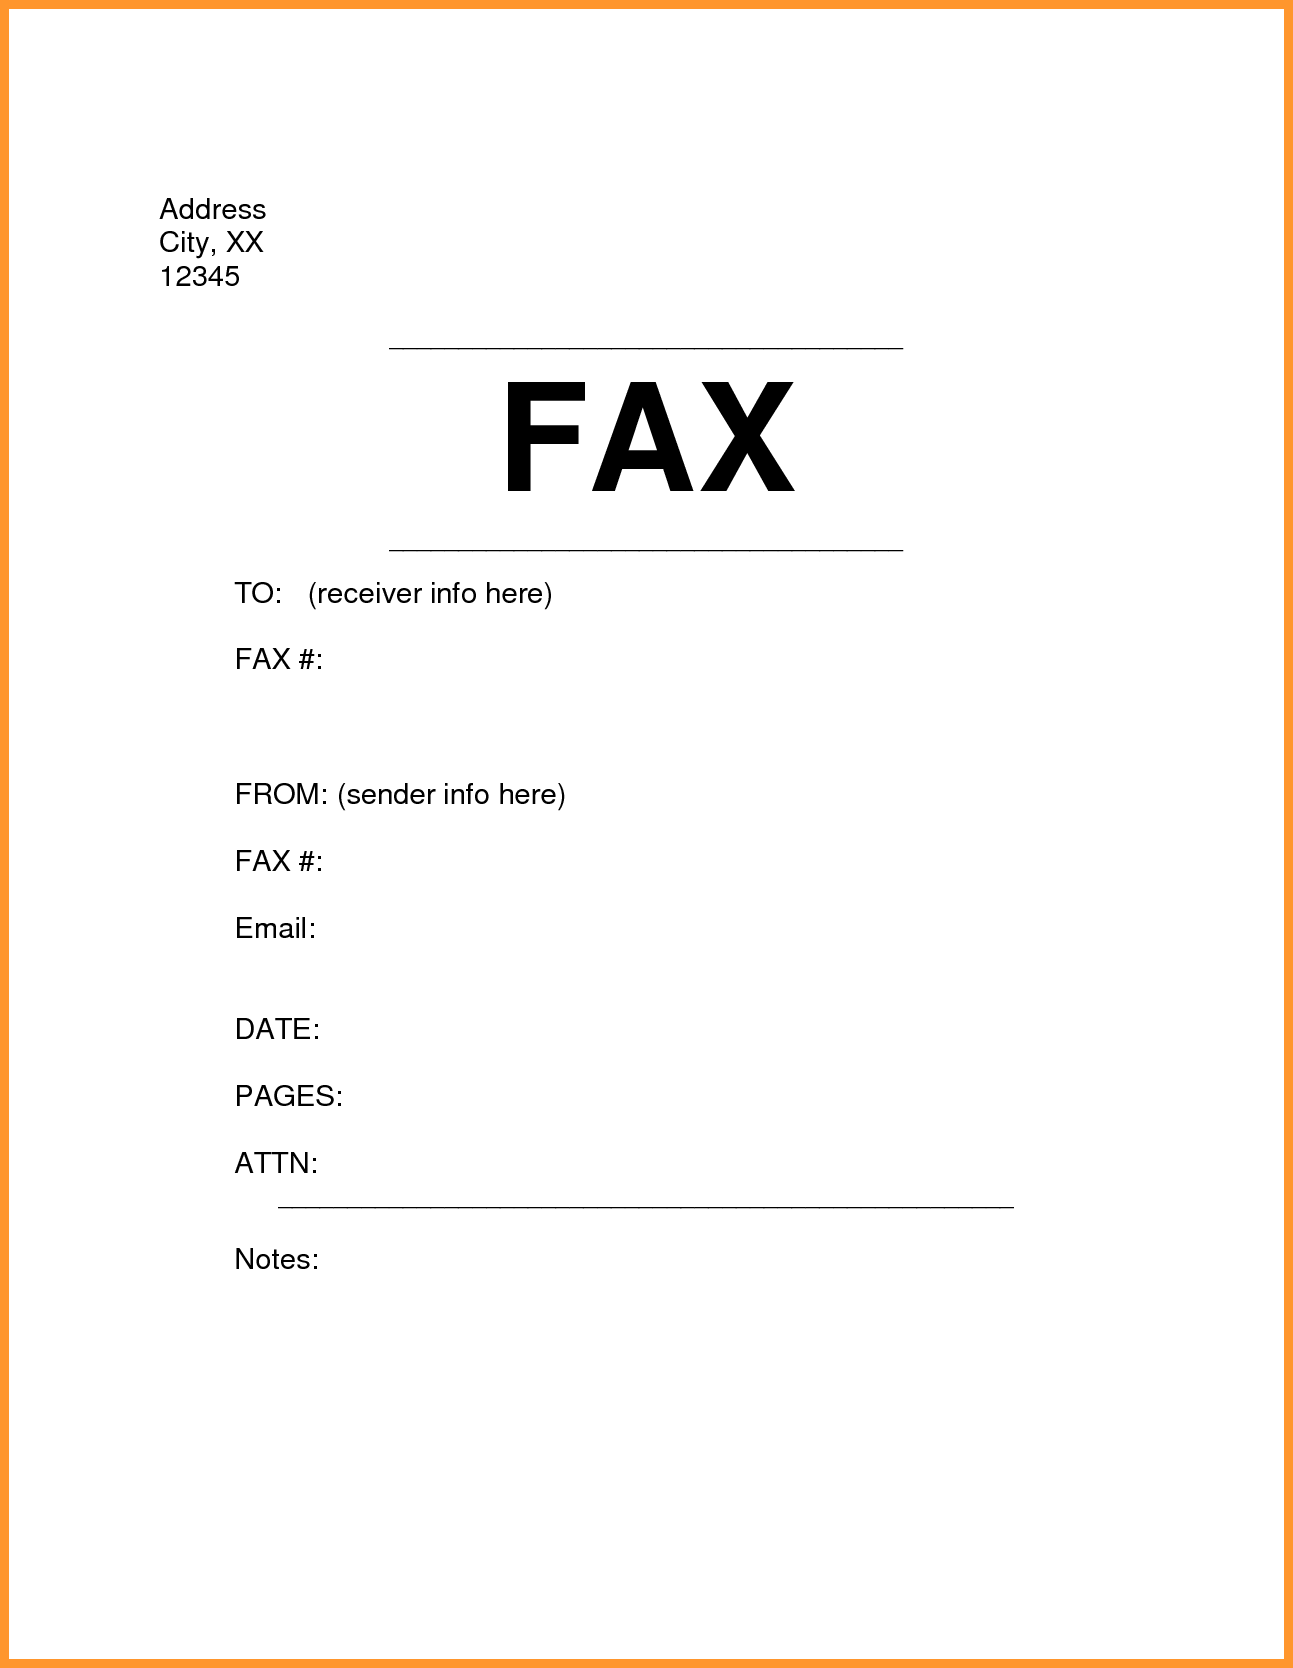 Facsimile Cover Sheet Template Word Maintenance Mechanic Sample